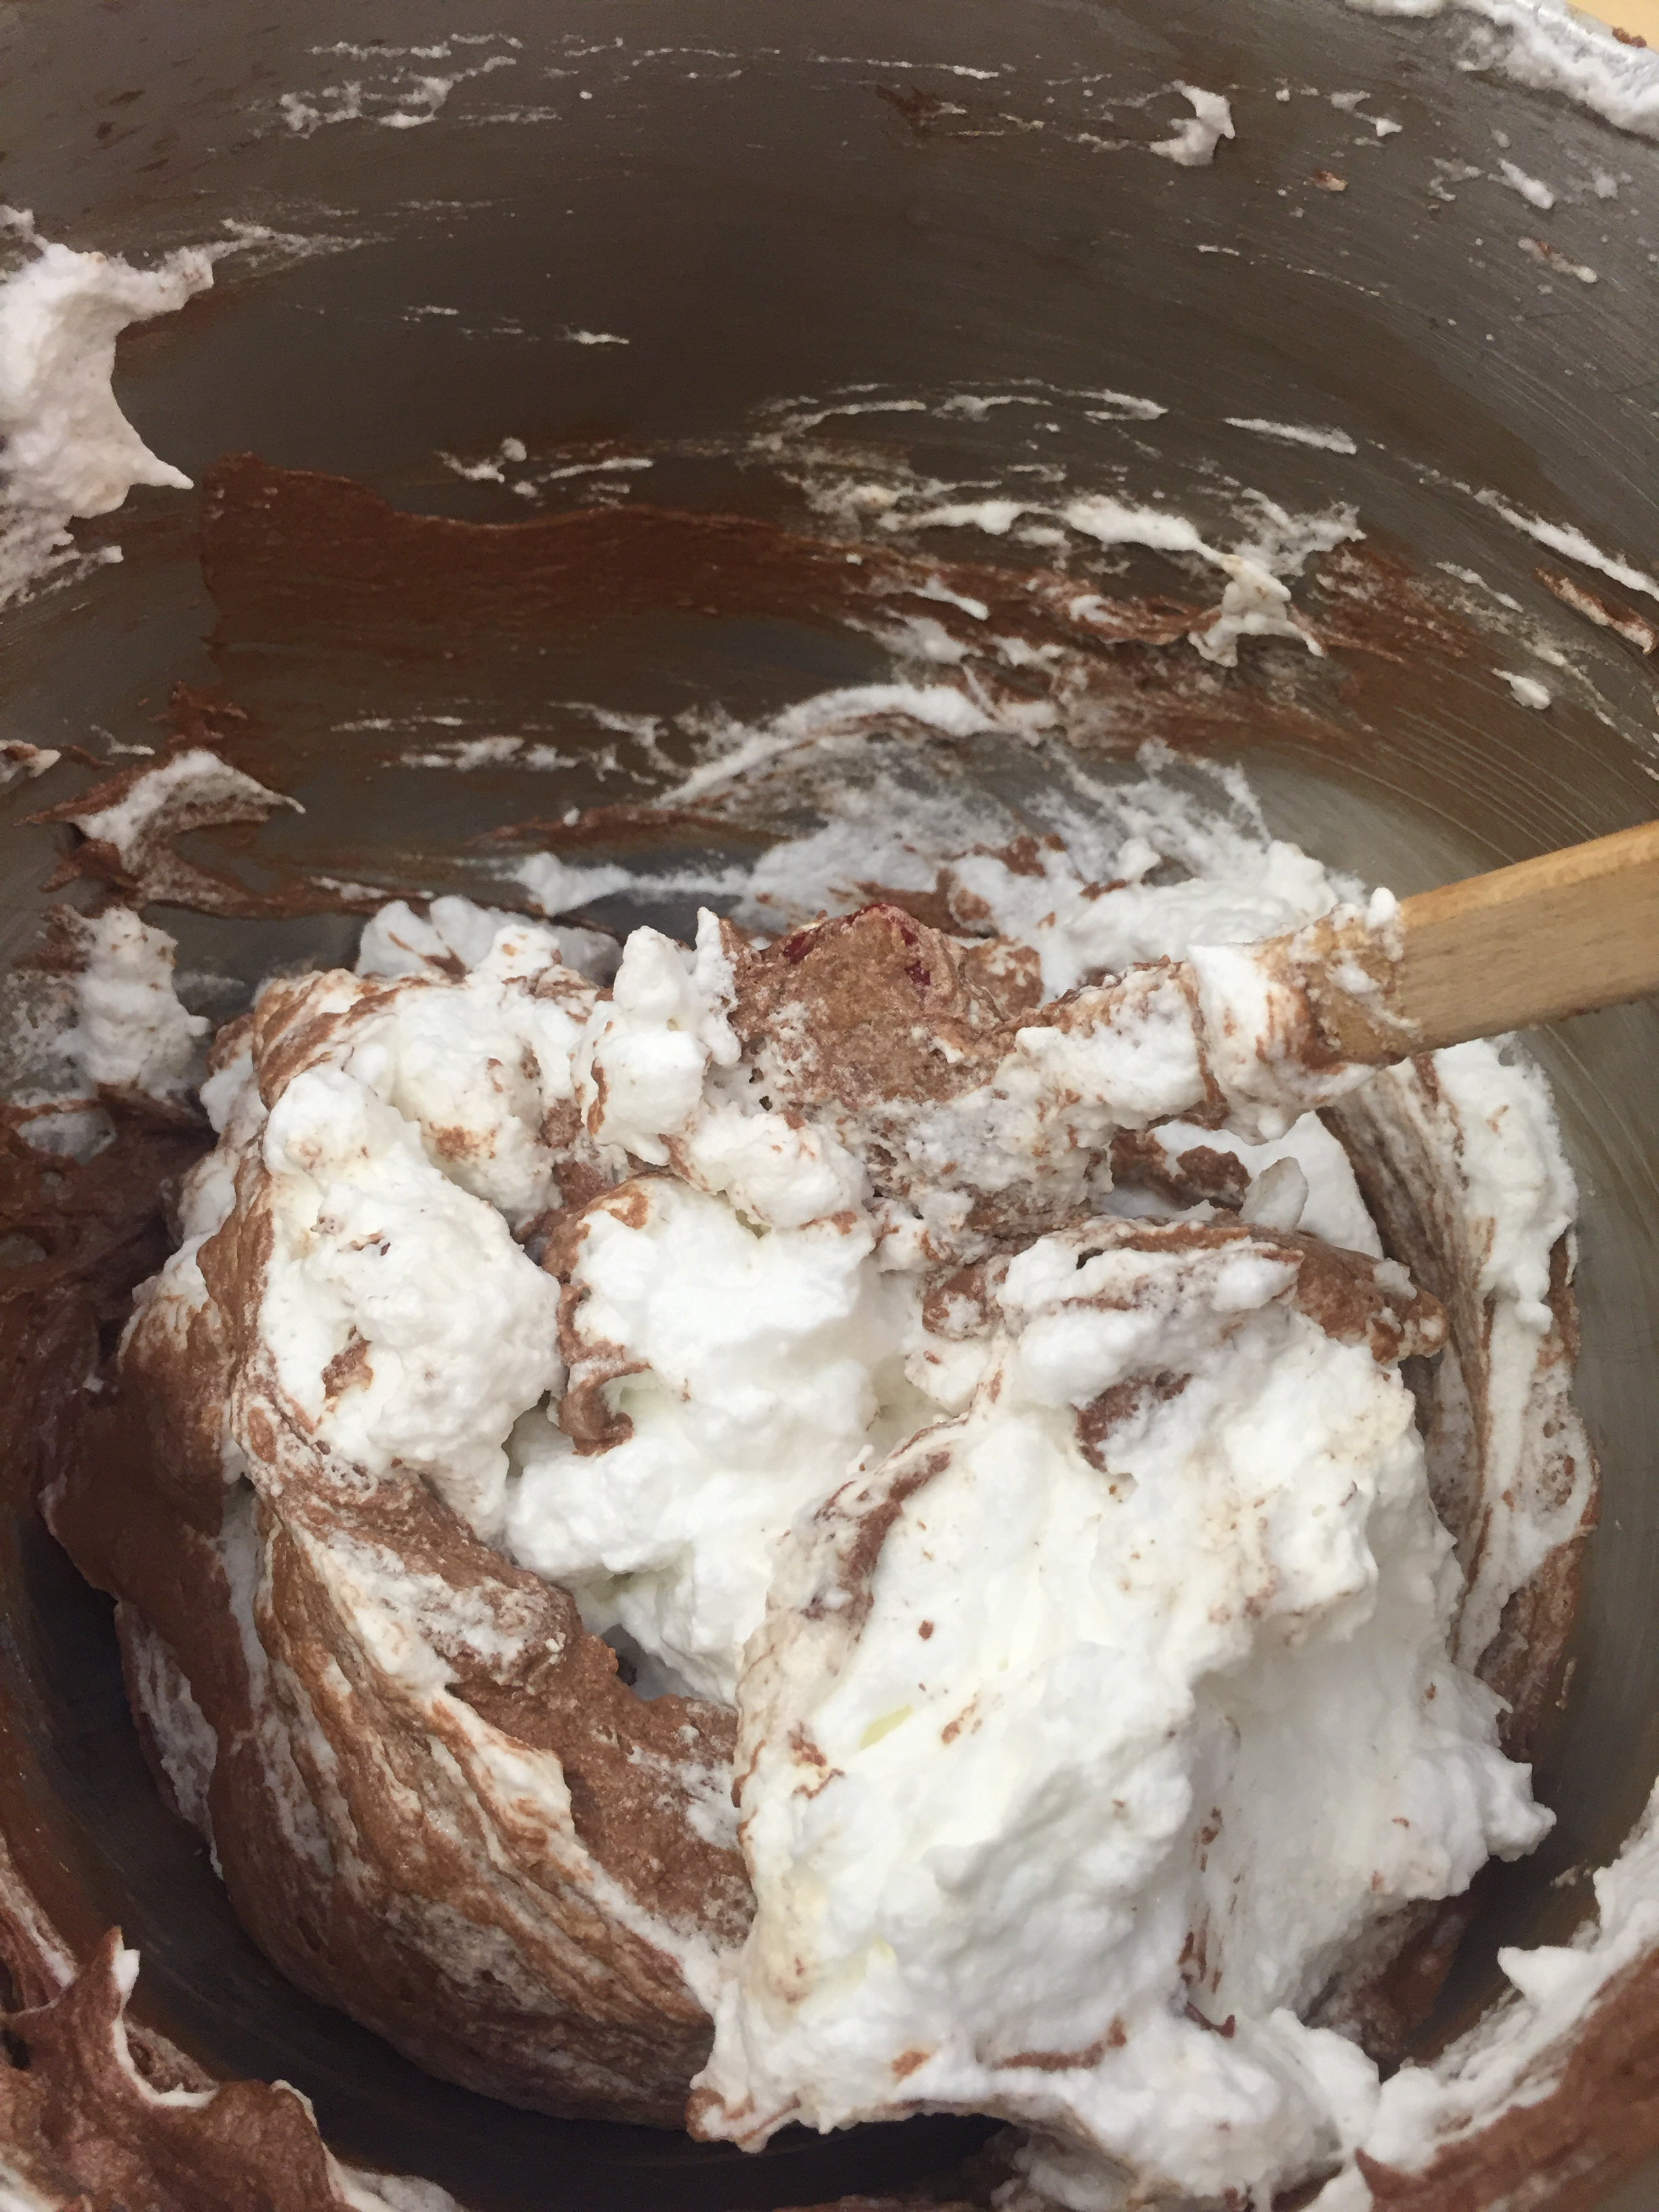 Folding the egg whites into the chocolate cake batter